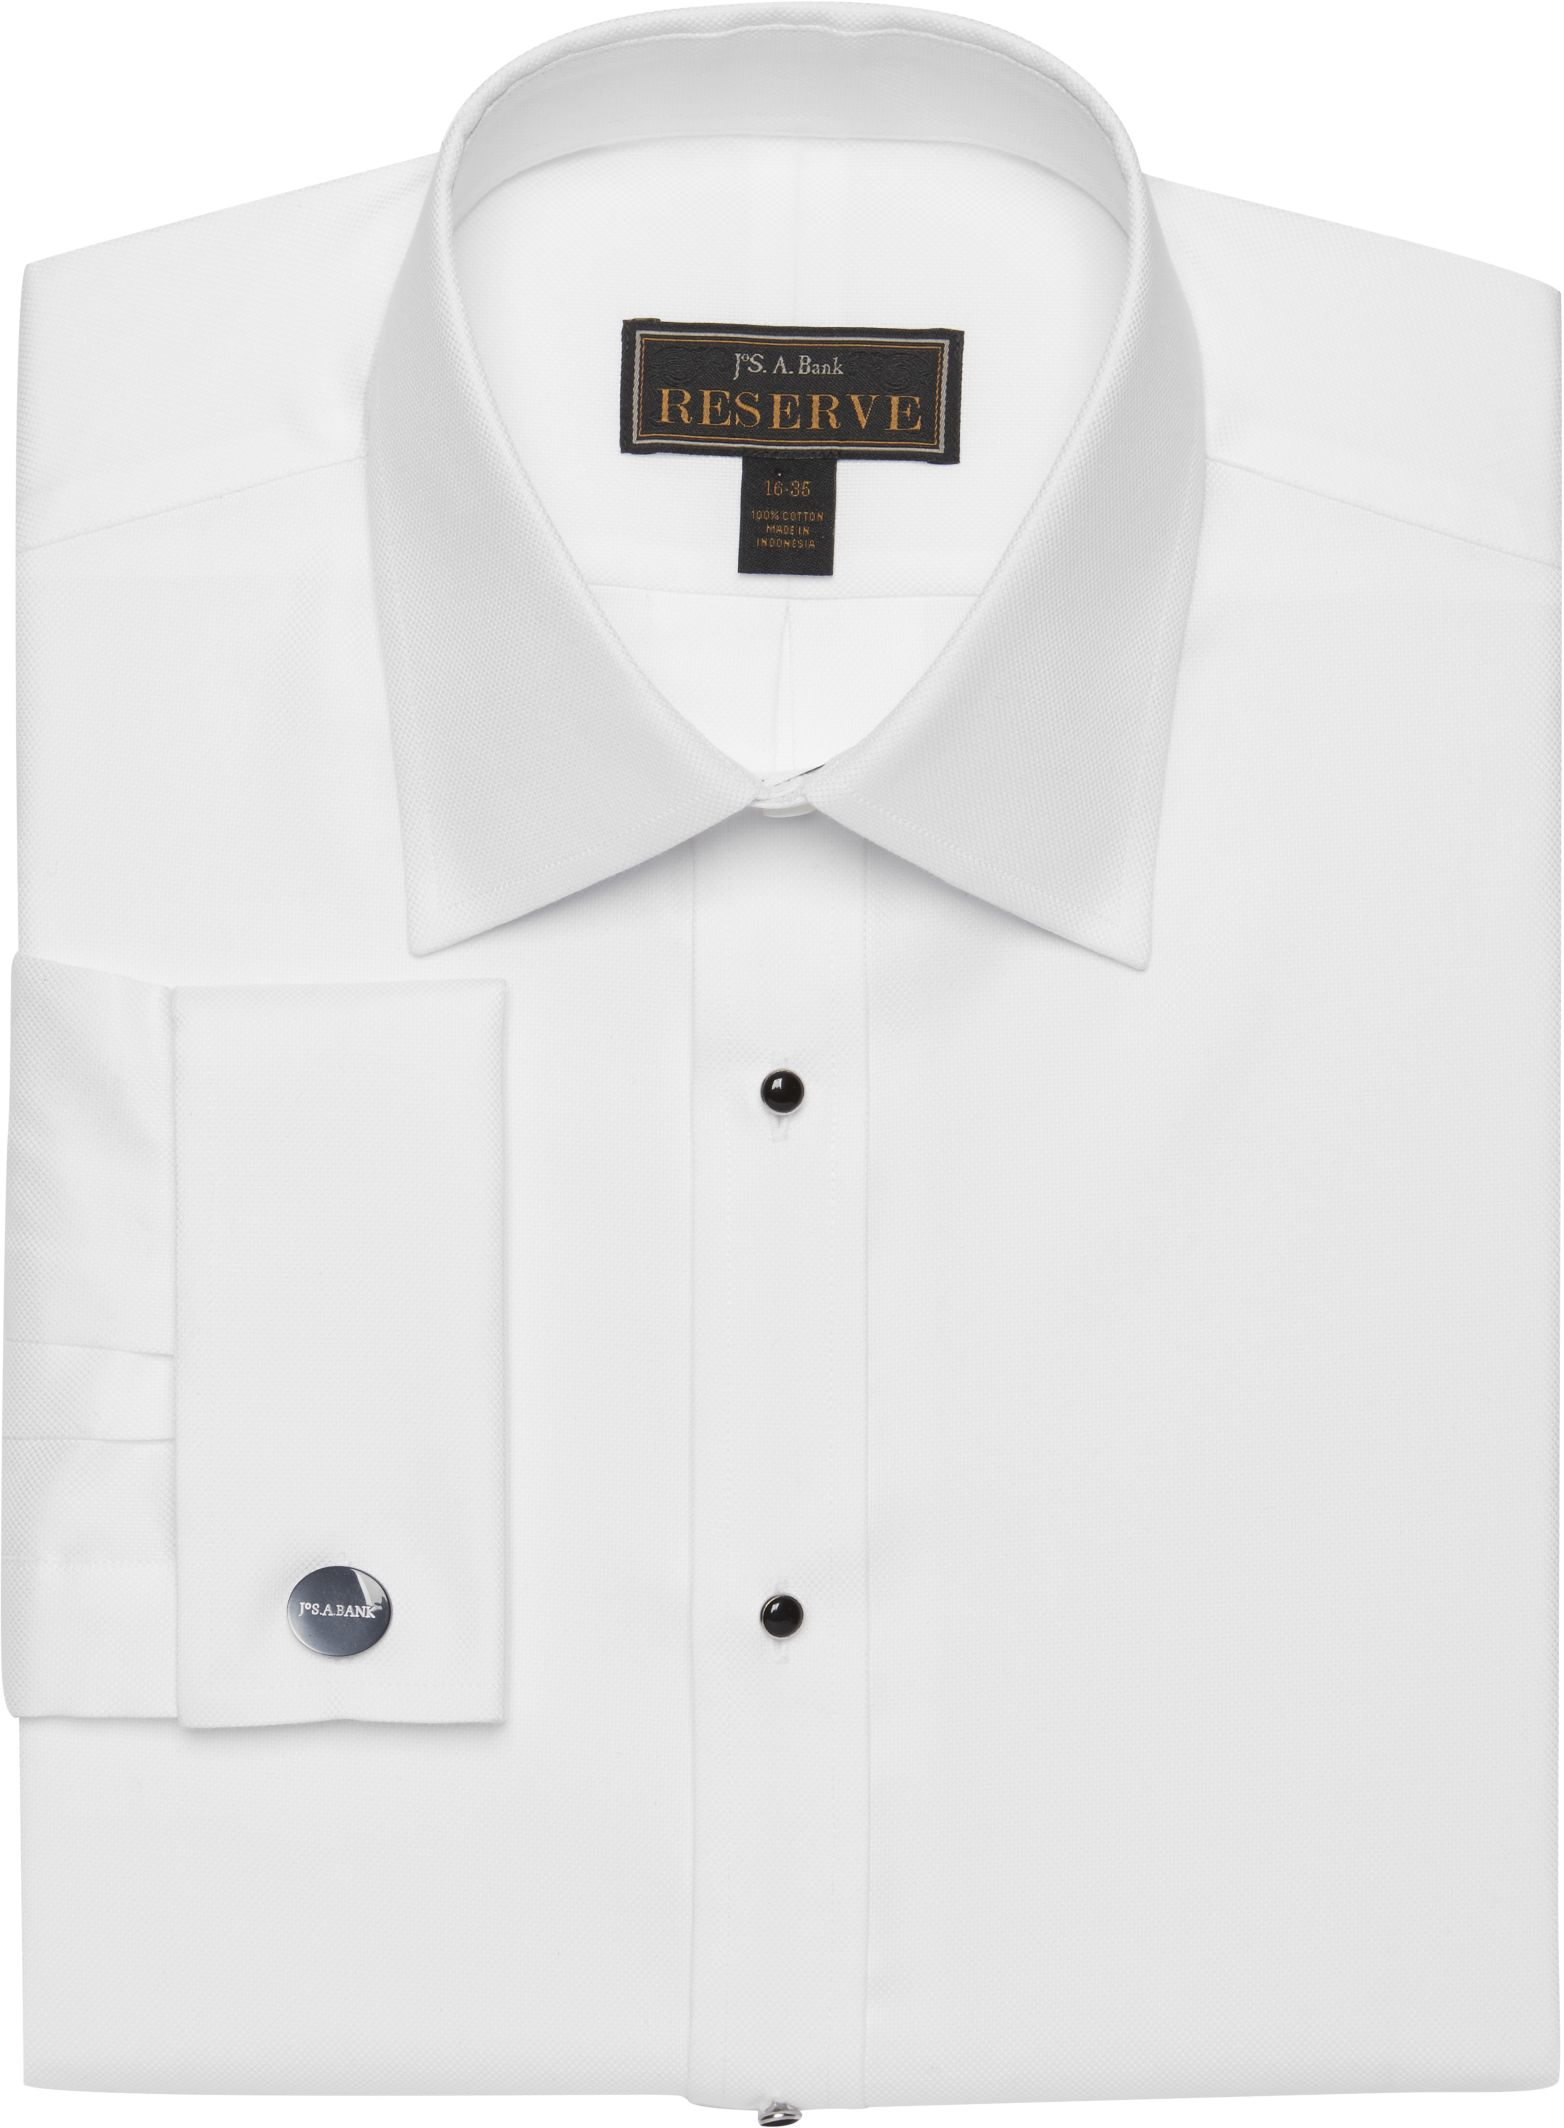 French Cuff Dress Shirts - Shop Men's Cufflink Shirts | JoS. A. Bank